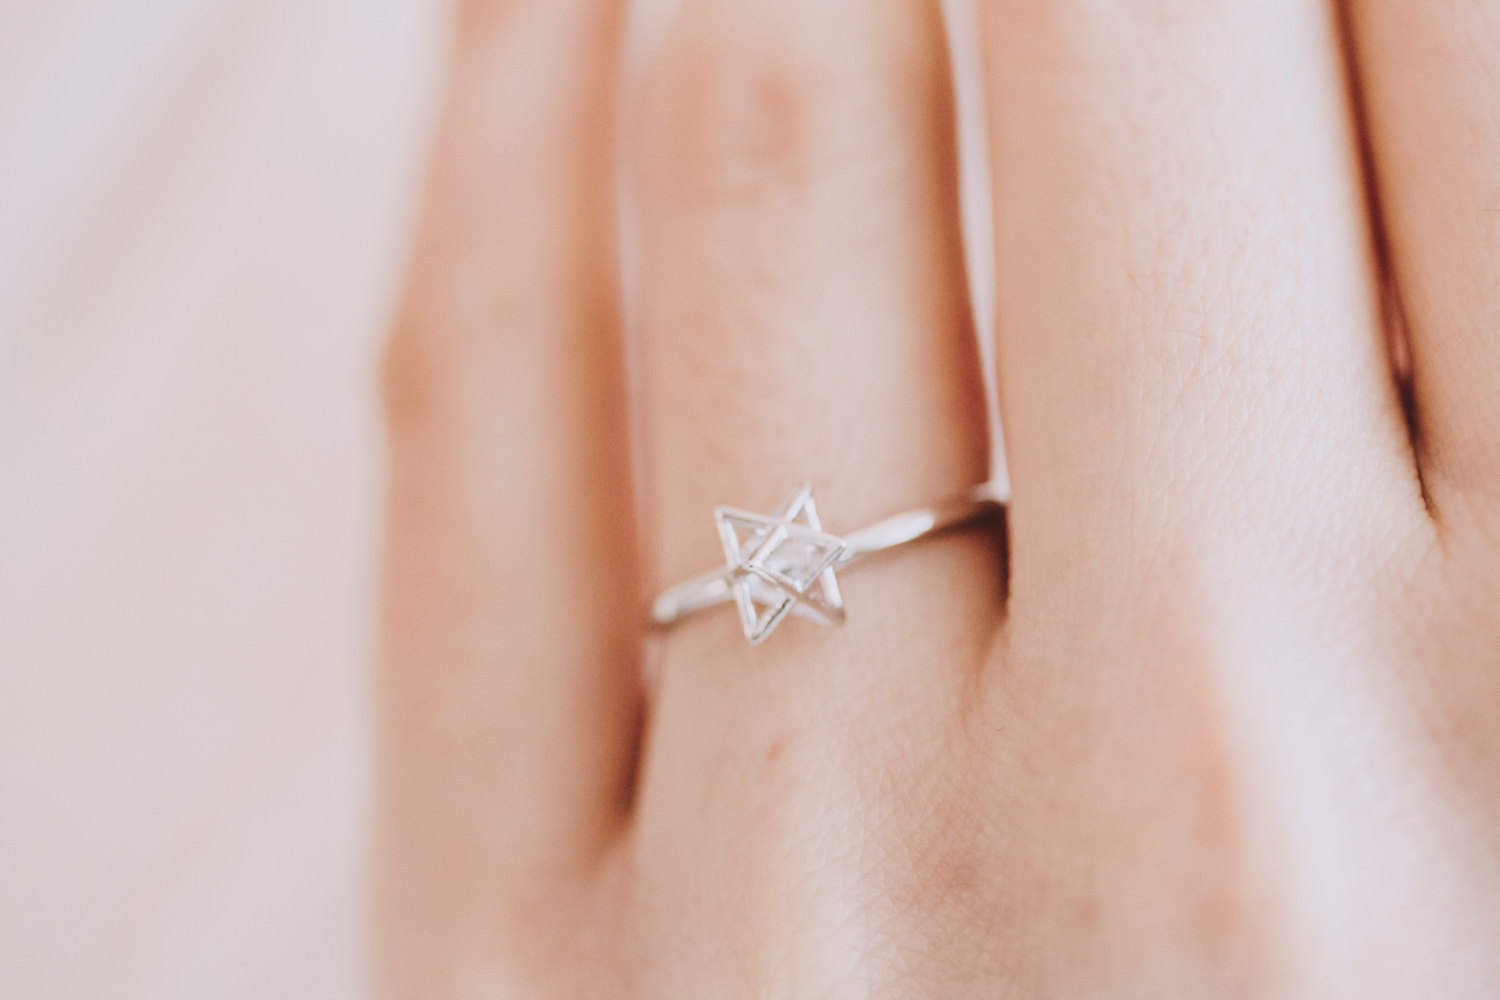 knot star ring/unique ring/adjustable ring/knuckle ring/stretch